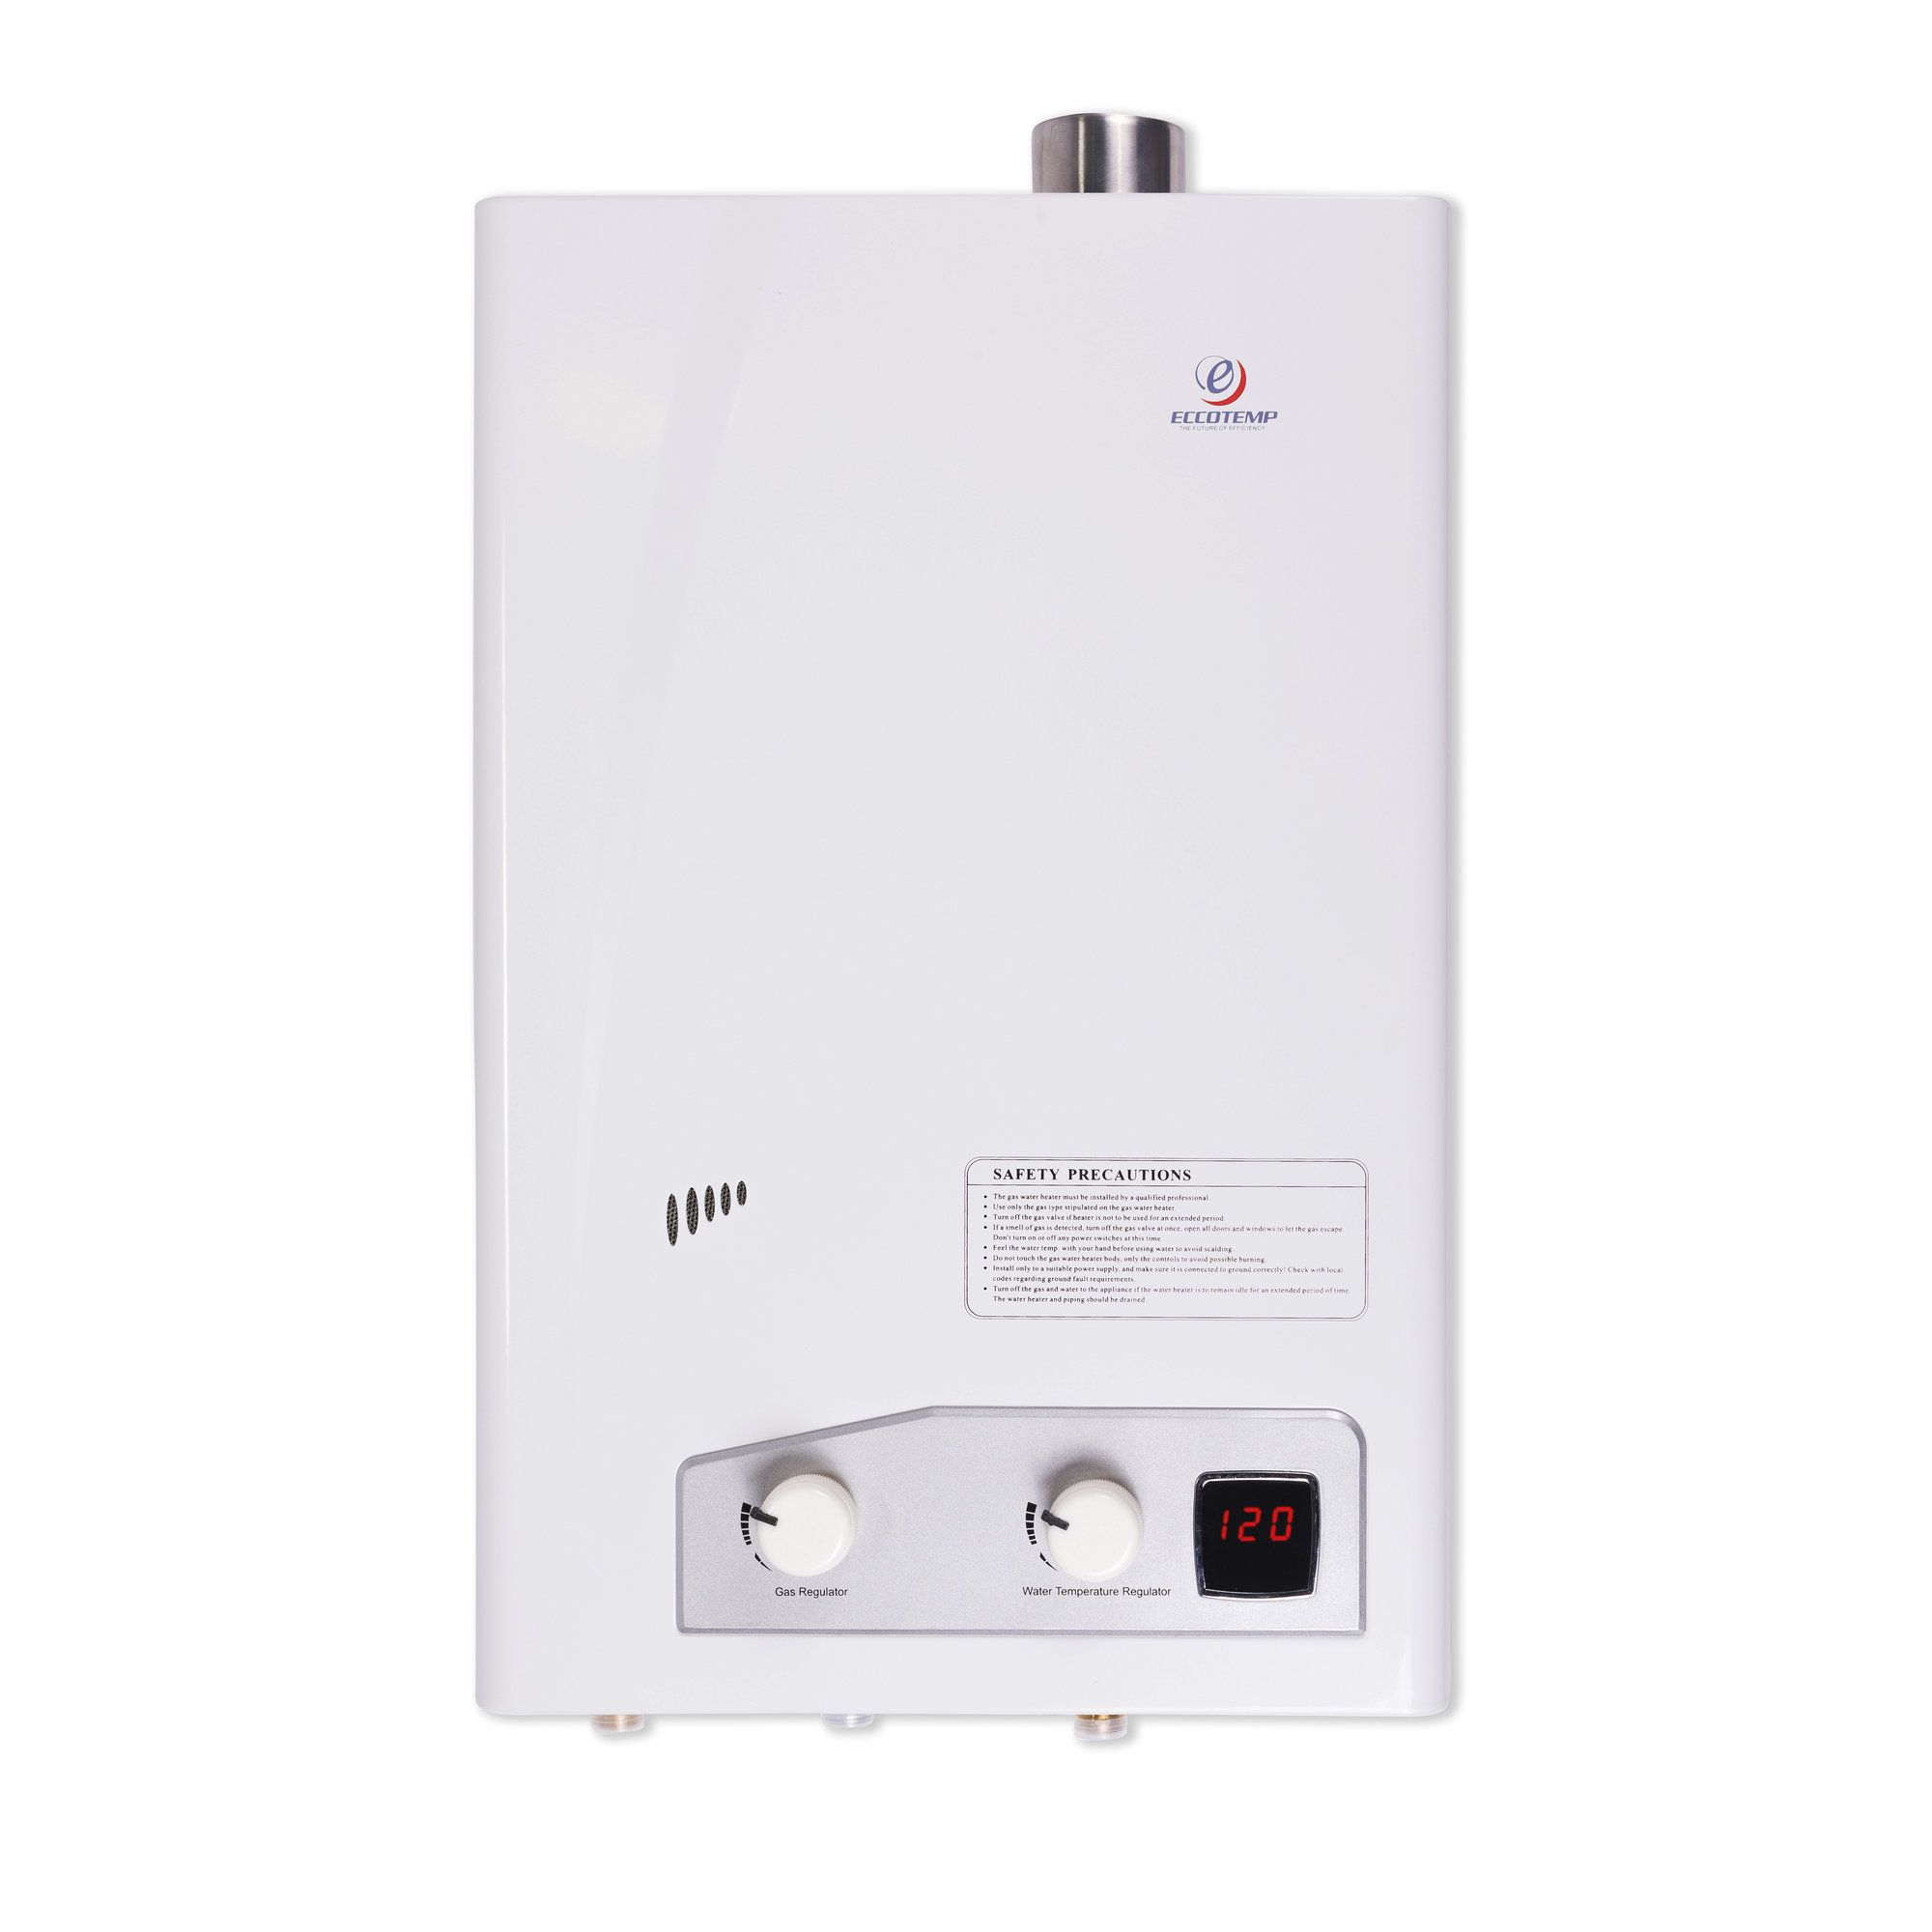 Eccotemp 4 0 Gallon Natural Gas Tankless Water Heater Natural Gas Water Heater Water Heating Heating Systems